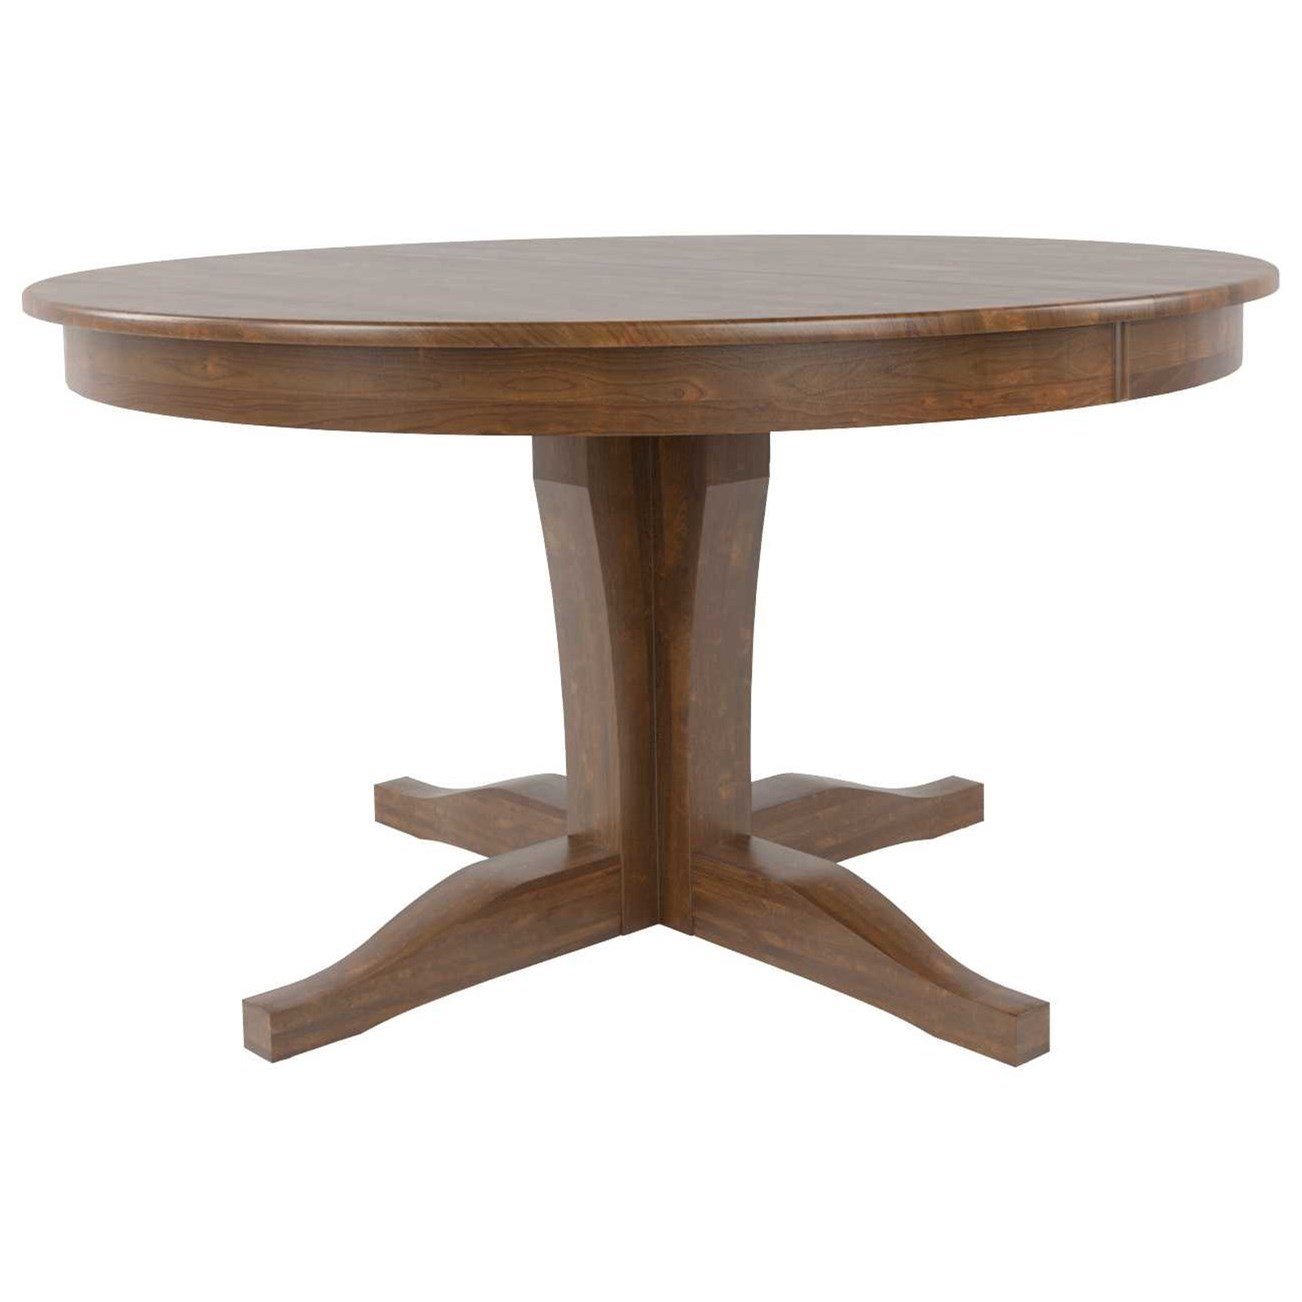 Core - Custom Dining Customizable Round Dining Table by Canadel at Jordan's Home Furnishings